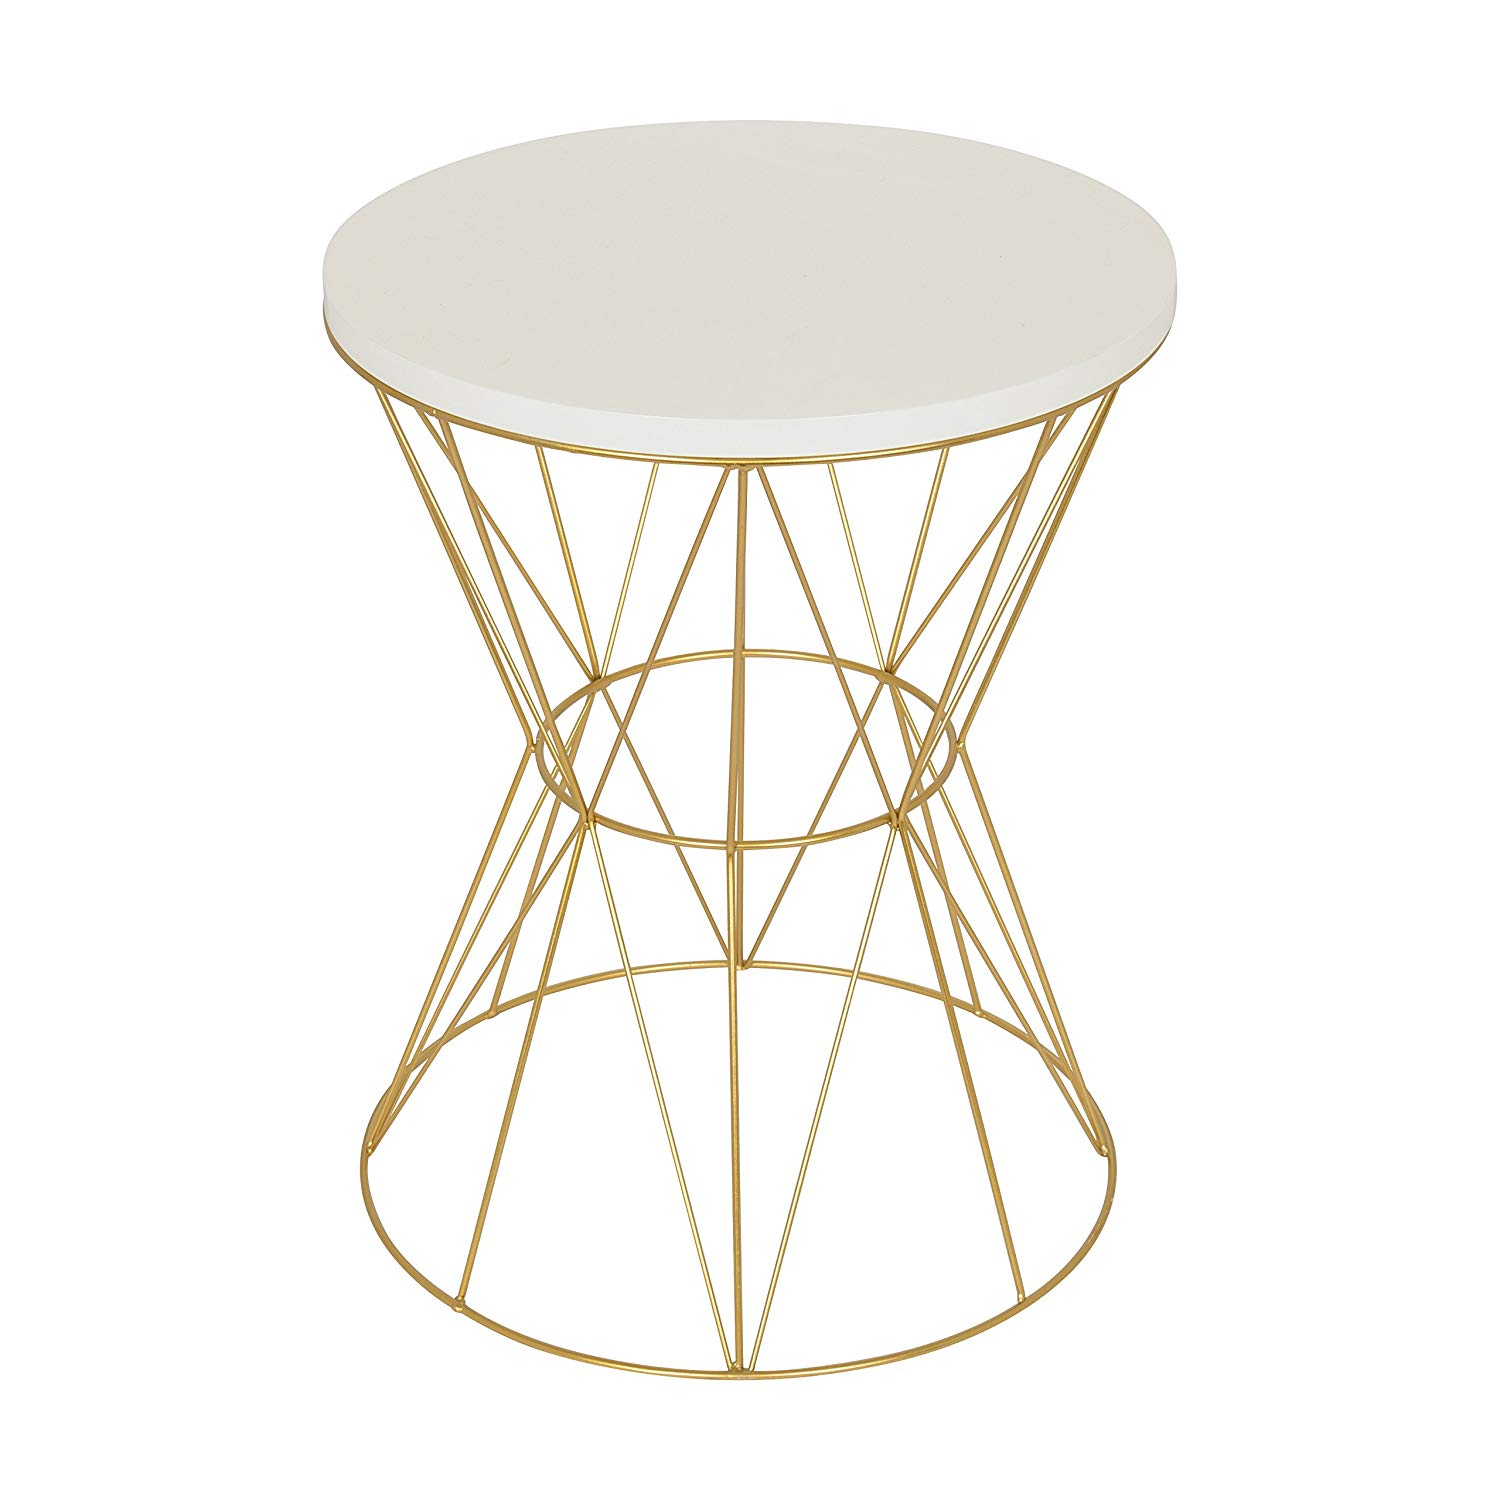 kate and laurel mendel round accent table with cage antique gold faceted glass top metal frame white kitchen dining large cover normande lighting led desk lamp kidney shaped end